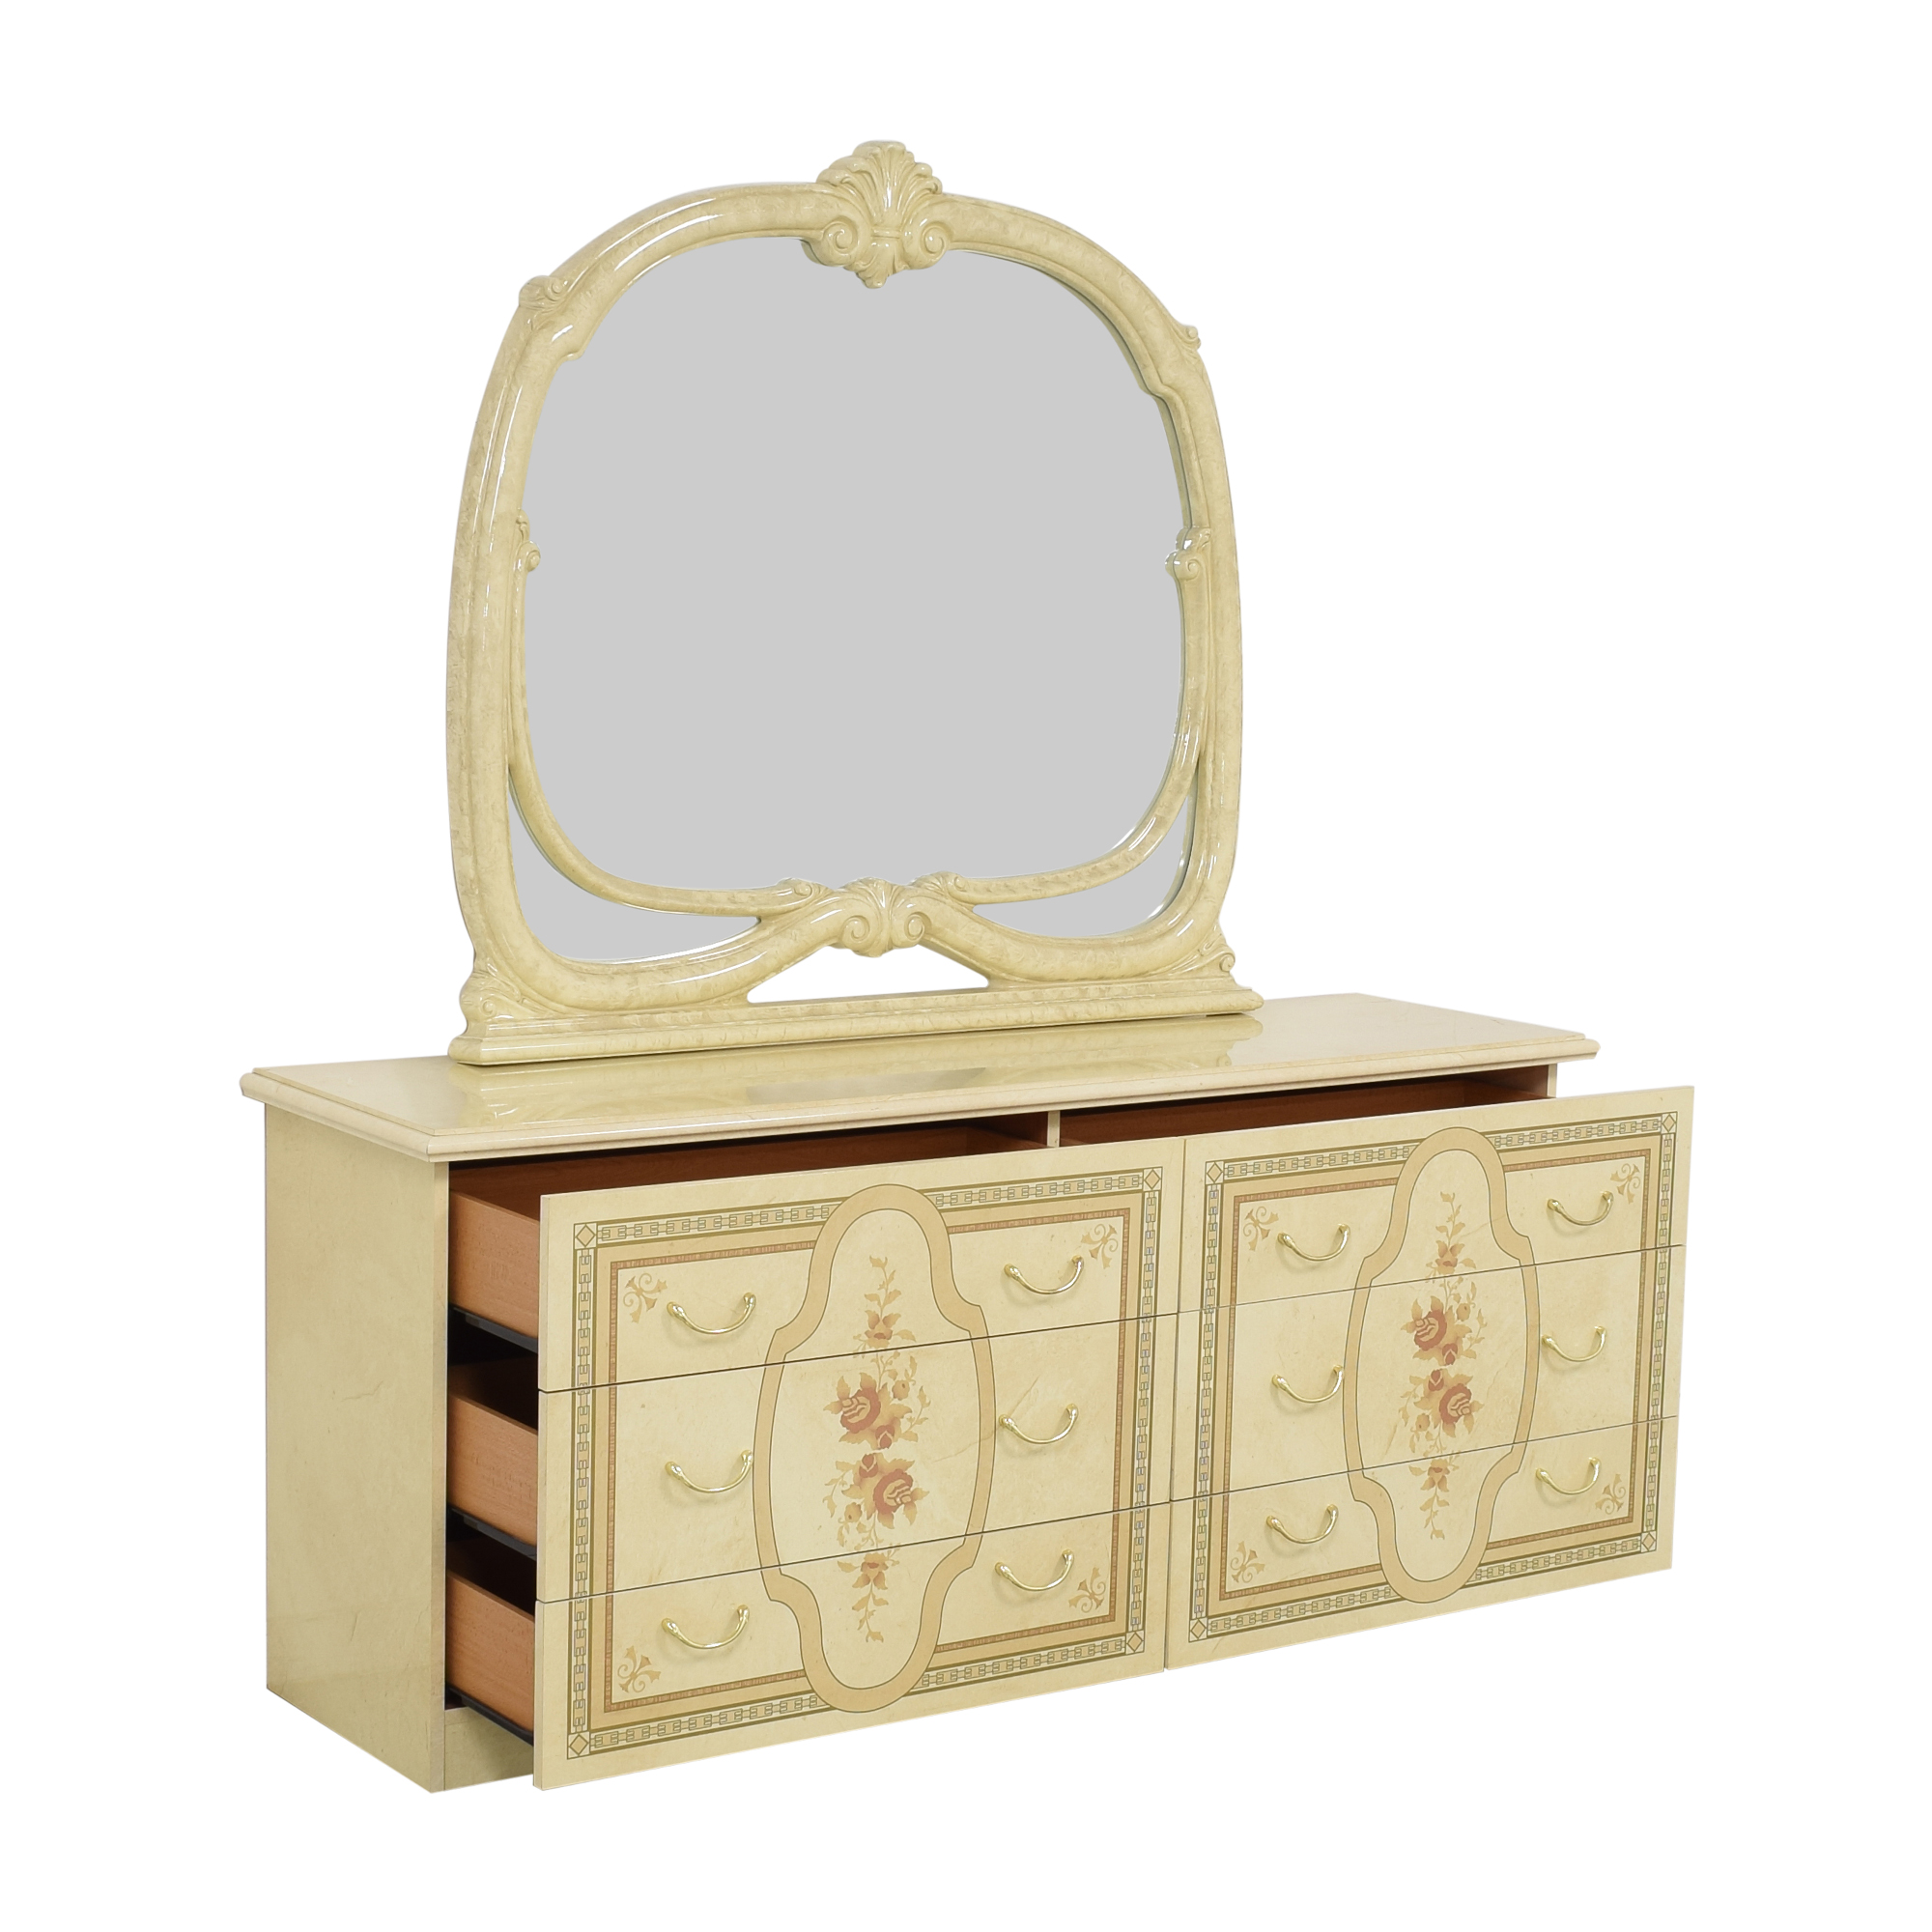 Roma Furniture Roma Furniture Dresser with Mirror nj